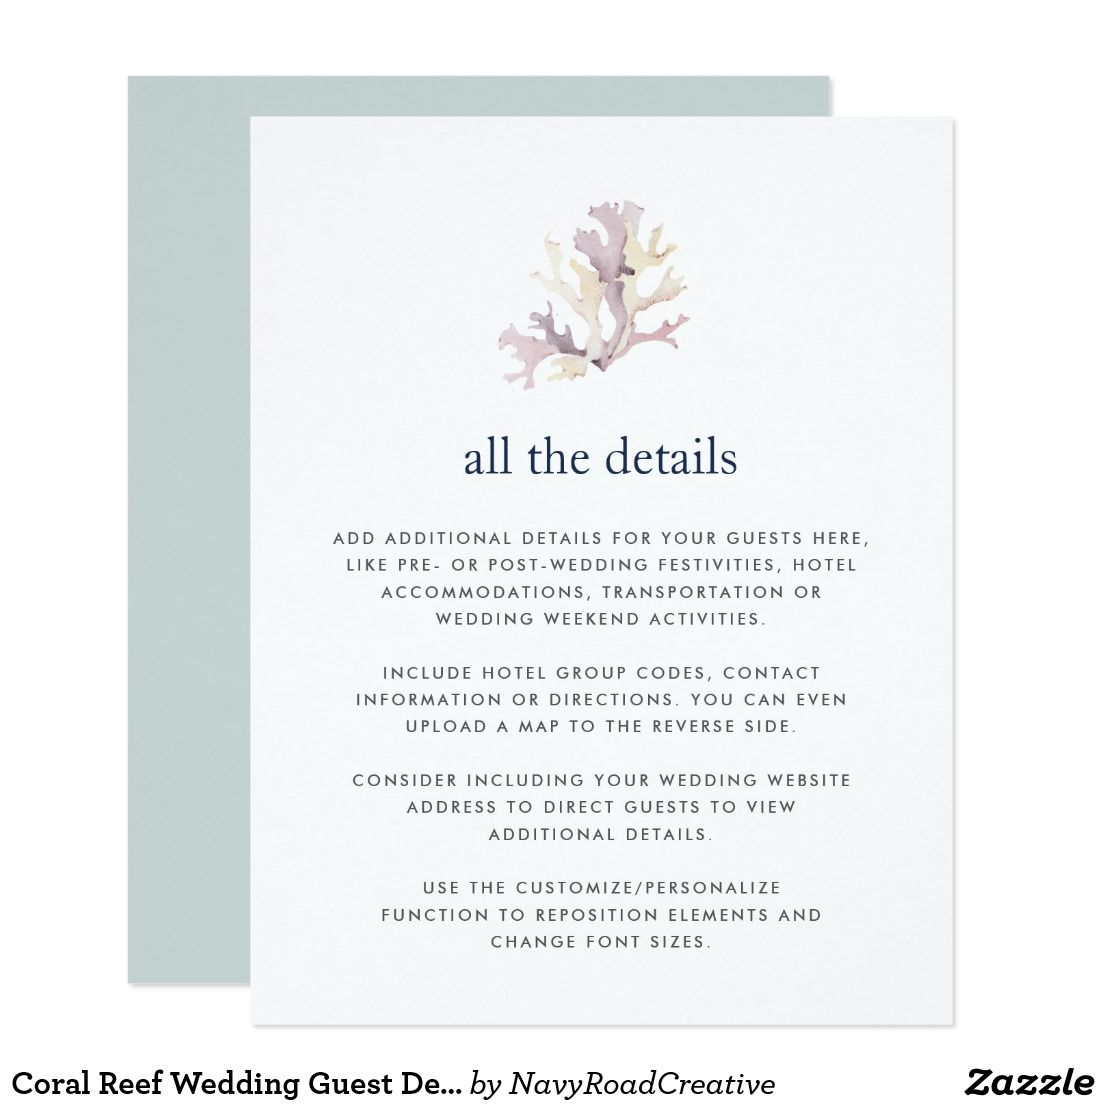 Coral Reef Wedding Guest Details Card | Pinterest | Coral reefs ...